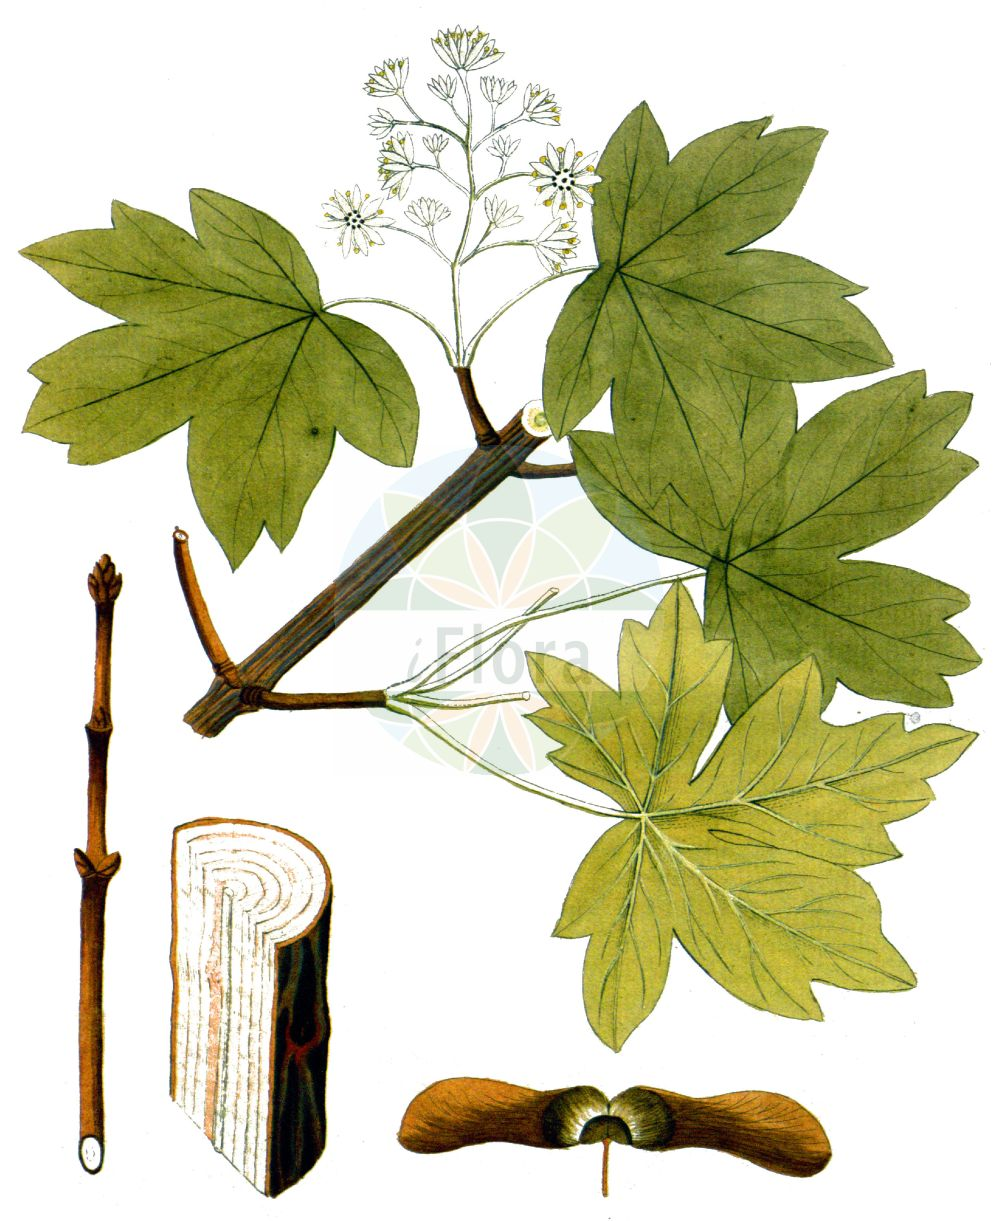 Historische Abbildung von Acer campestre (Feld-Ahorn - Field Maple). Das Bild zeigt Blatt, Bluete, Frucht und Same. ---- Historical Drawing of Acer campestre (Feld-Ahorn - Field Maple).The image is showing leaf, flower, fruit and seed.(Acer campestre,Feld-Ahorn,Field Maple,Acer acuminatilobum,Acer affine,Acer austriacum,Acer bedoei,Acer campestre,Acer collinum,Acer leiocarpon,Acer microcarpon,Acer molle,Feld-Ahorn,Field Maple,Common Maple,Hedge Maple,Maser,Acer,Ahorn,Maple,Sapindaceae,Seifenbaumgewaechse,Soapberry family,Blatt,Bluete,Frucht,Same,leaf,flower,fruit,seed,Vietz (1800-1822))